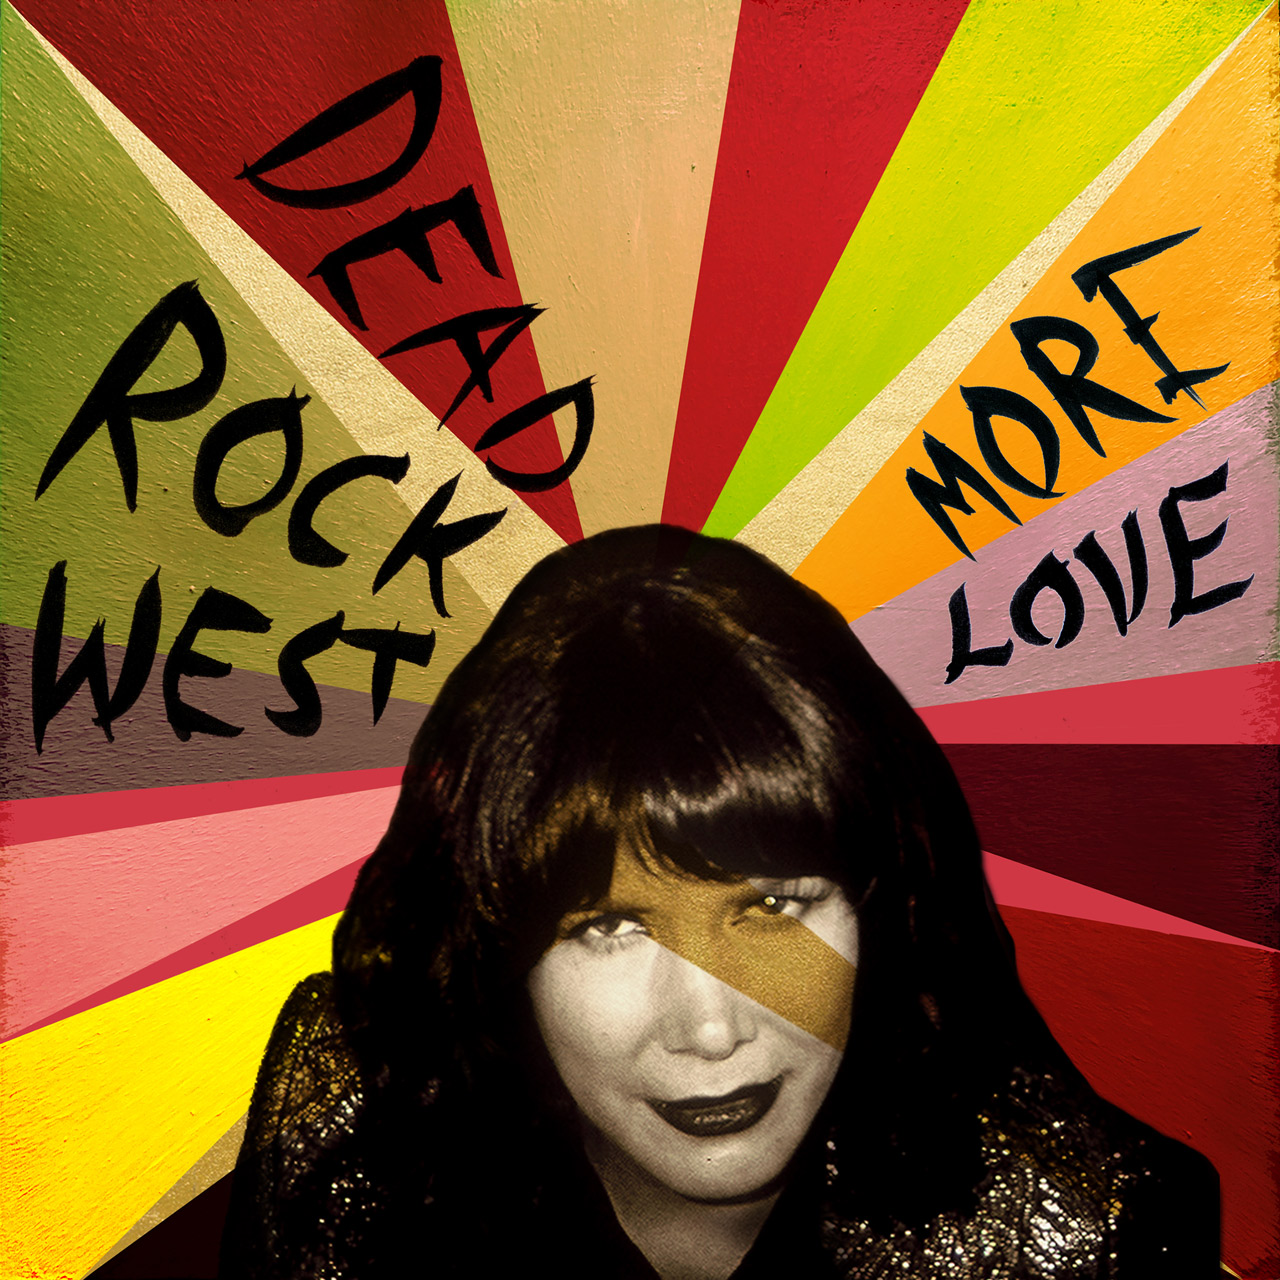 DRW-MoreLove-COVER-Digital-5in-web.jpg